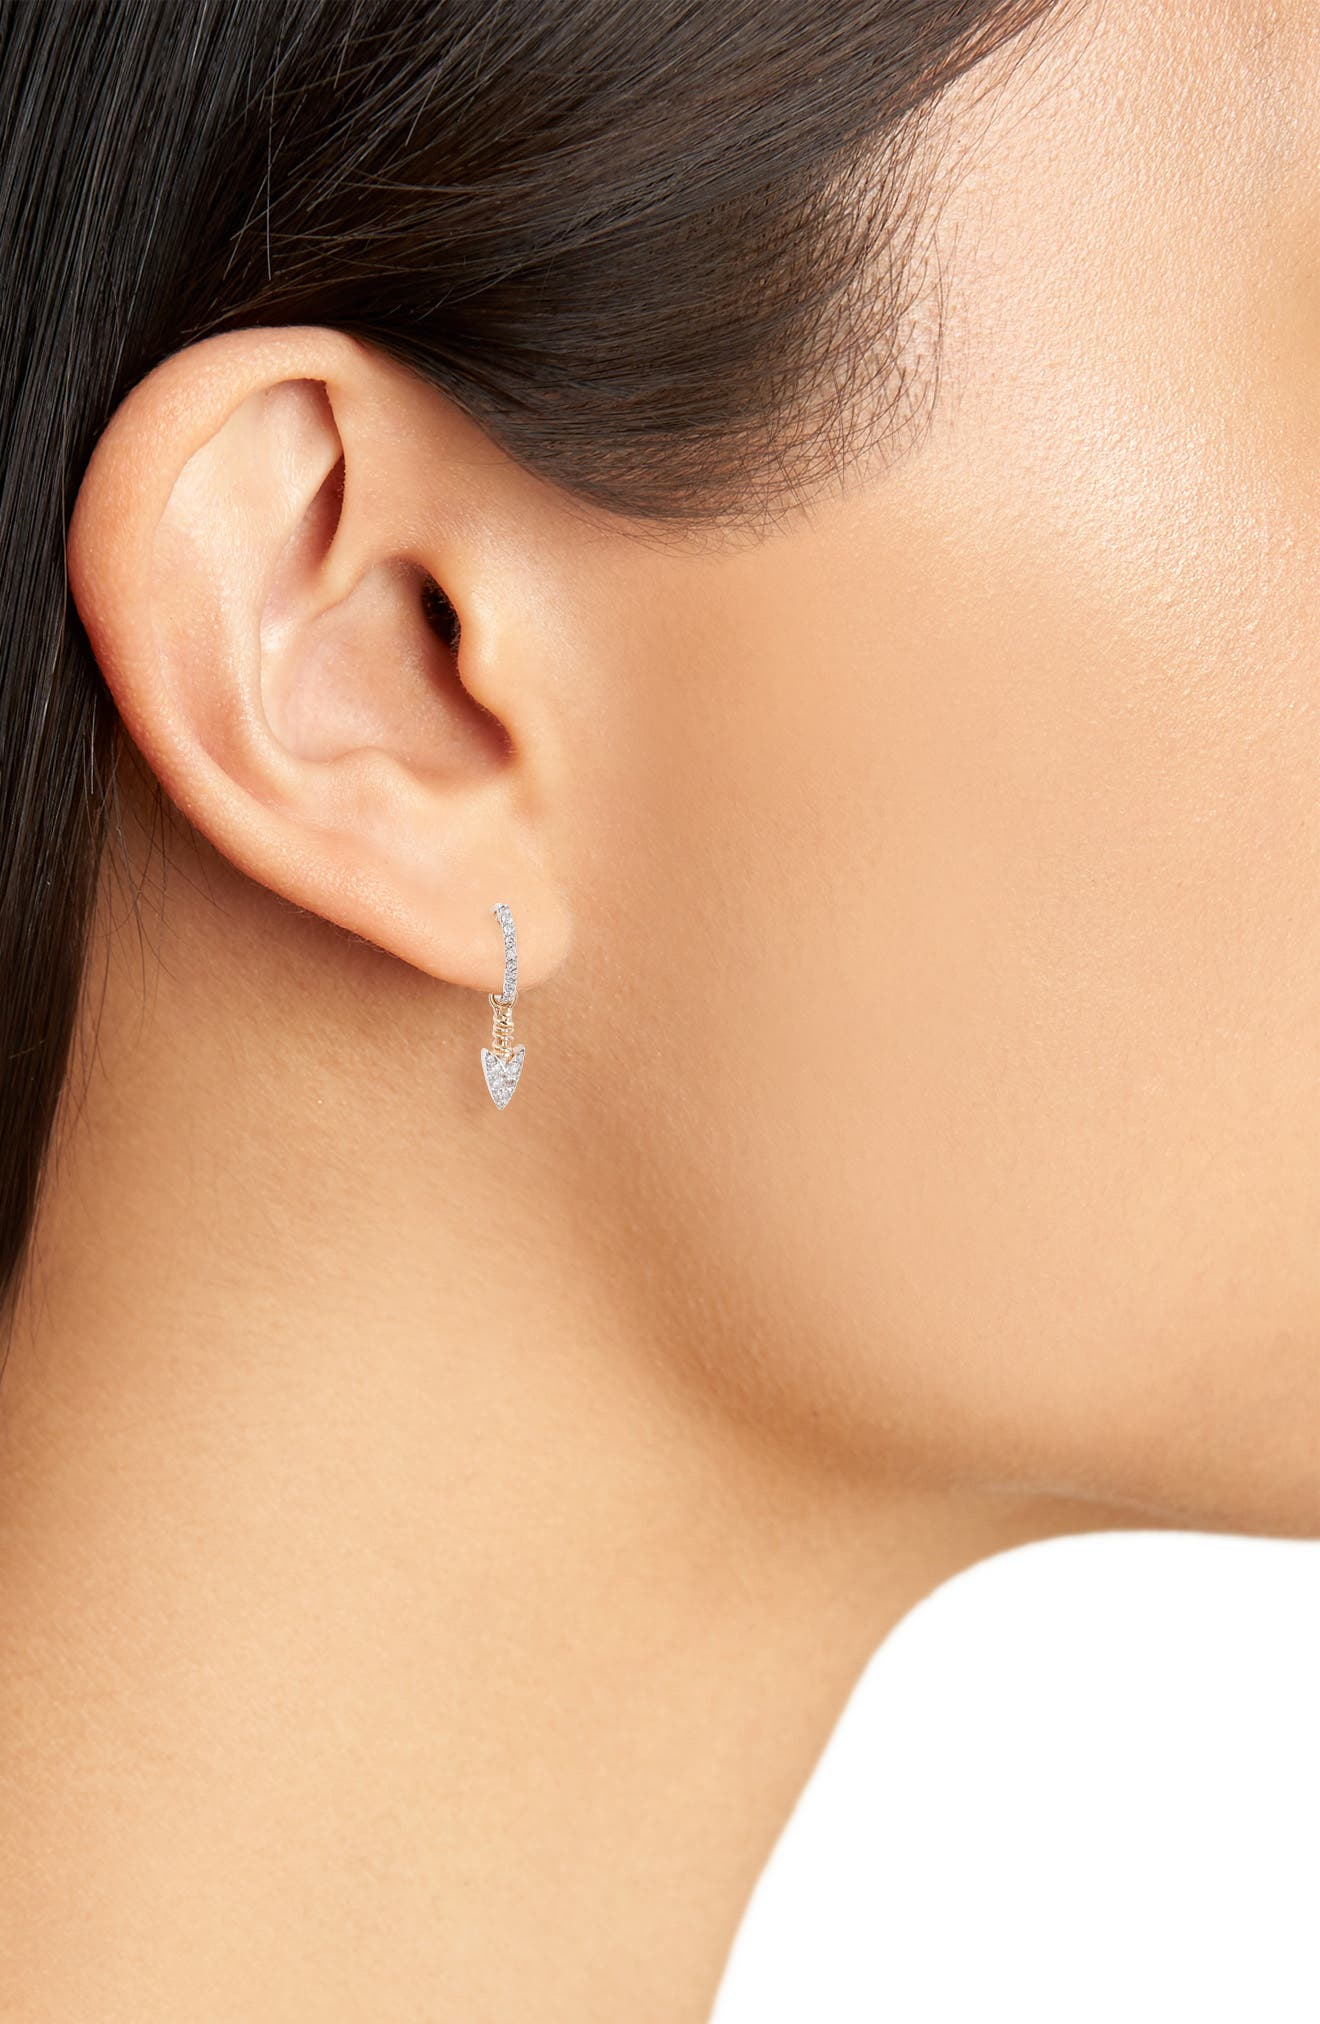 KISMET BY MILKA, Arrowhead Eardrop Single Earring, Alternate thumbnail 2, color, ROSE GOLD/ DIAMOND